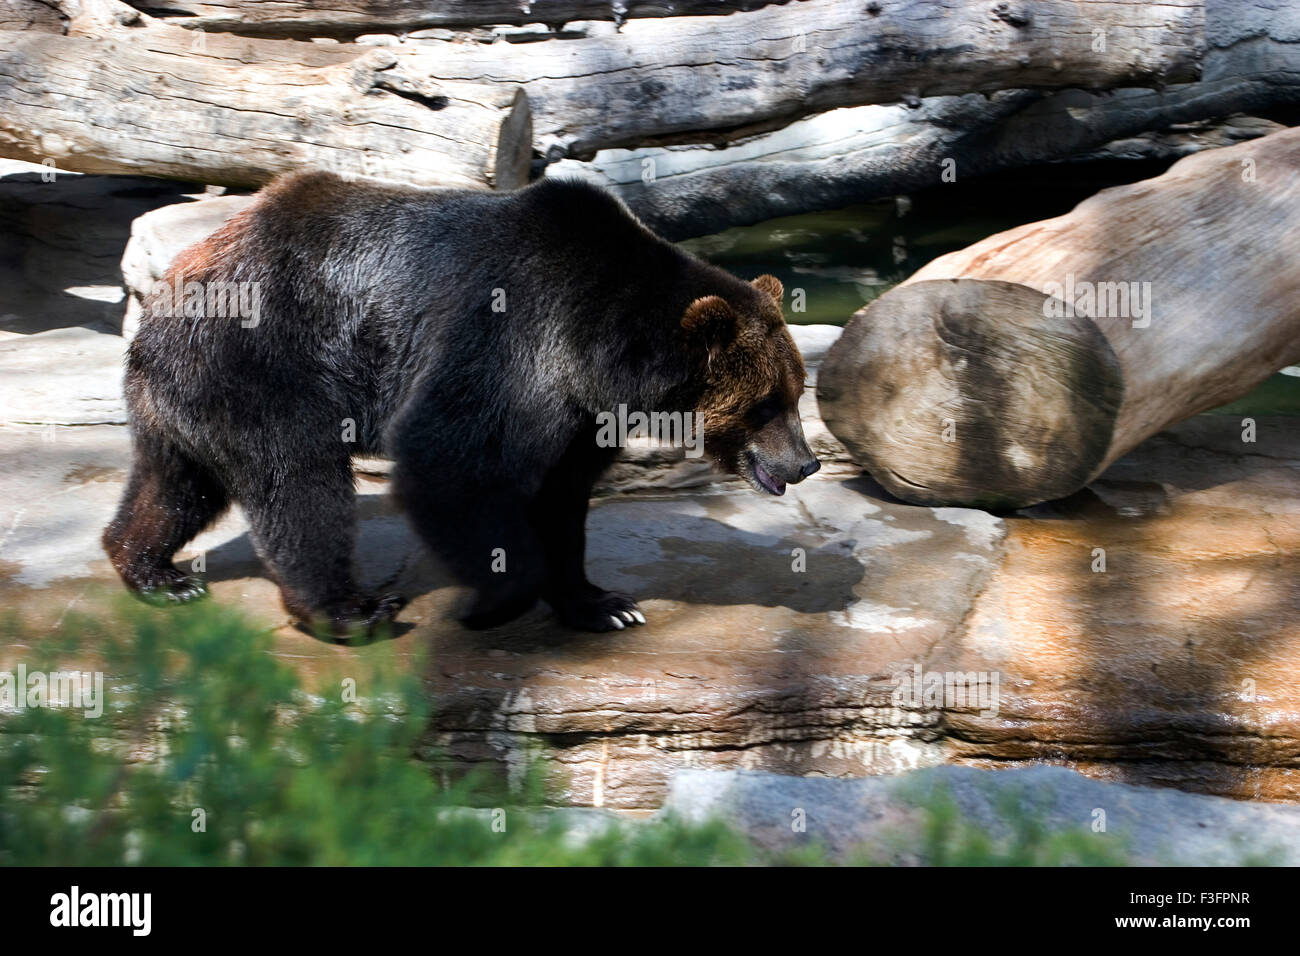 Asiatic Black bear ursus thibetanus ; Denver Zoo ; U.S.A. United States of America - Stock Image